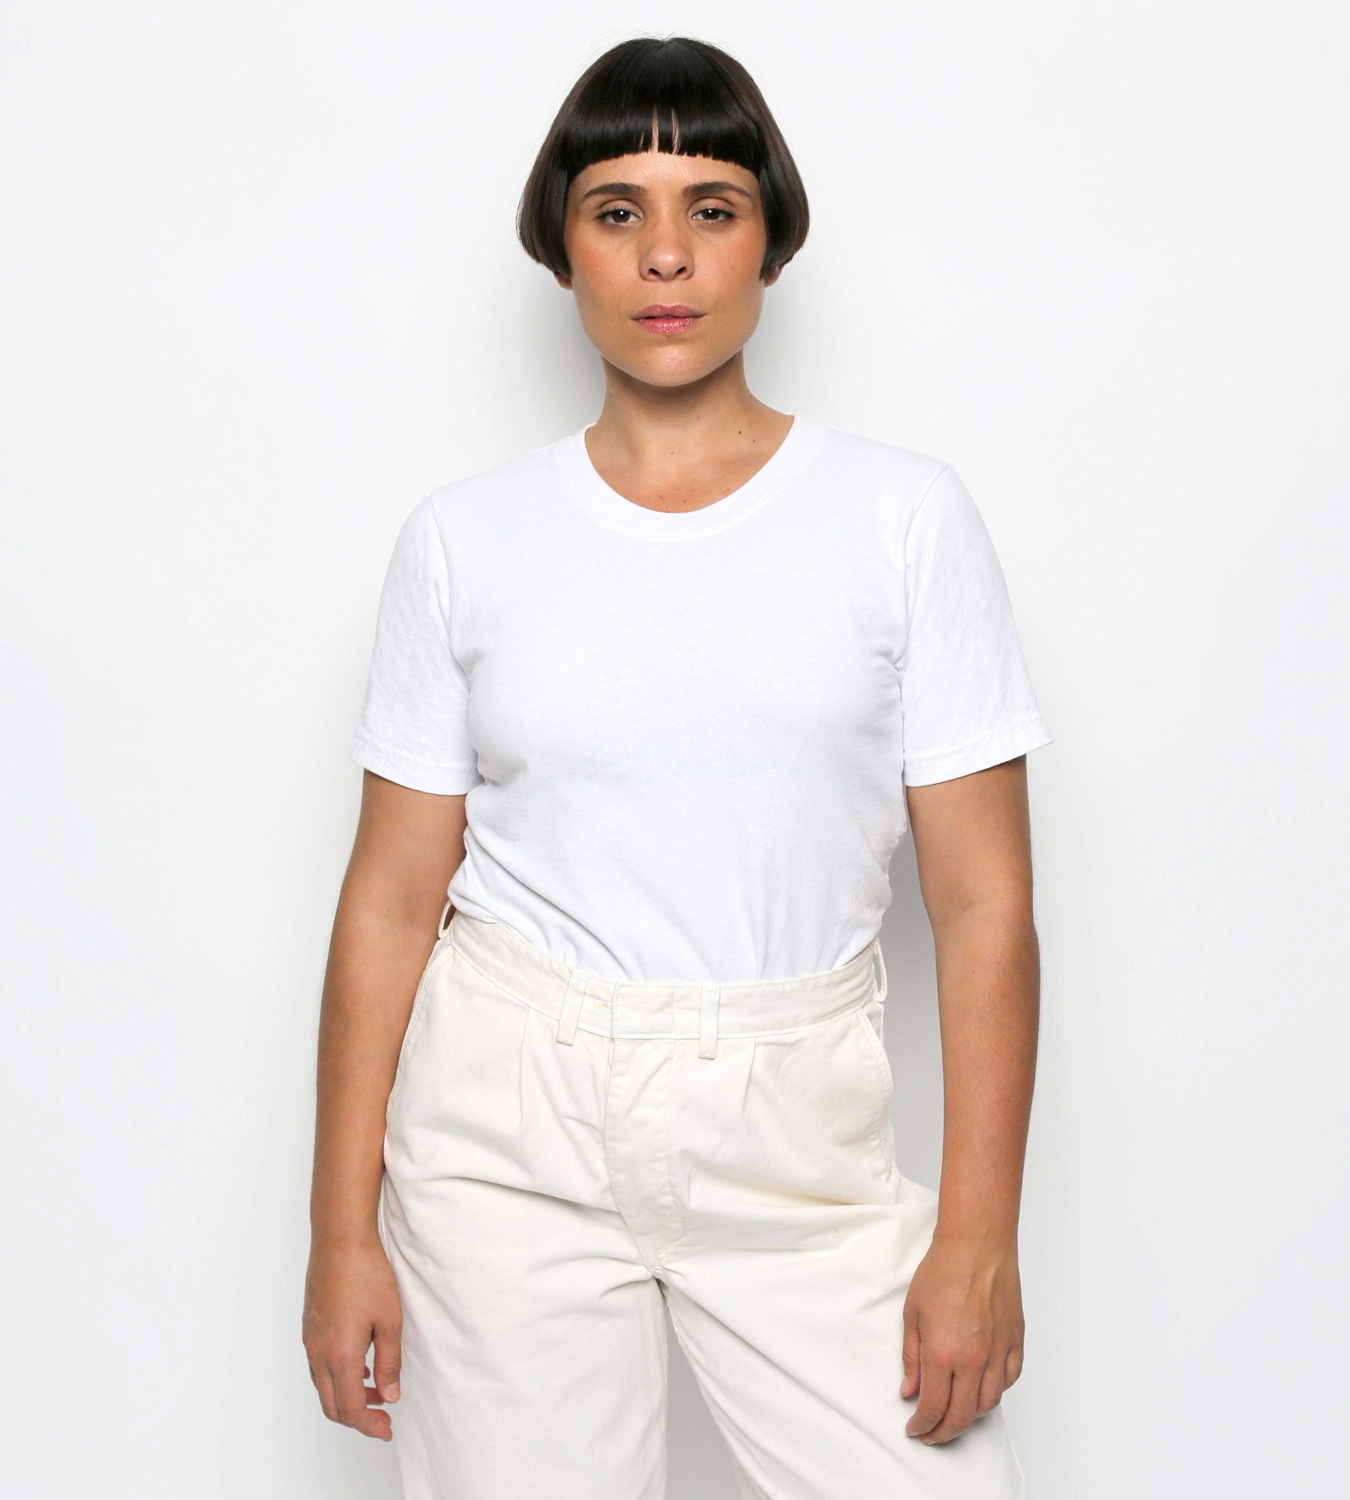 Irene in the Women's Recycled Cotton Tailored T-shirt